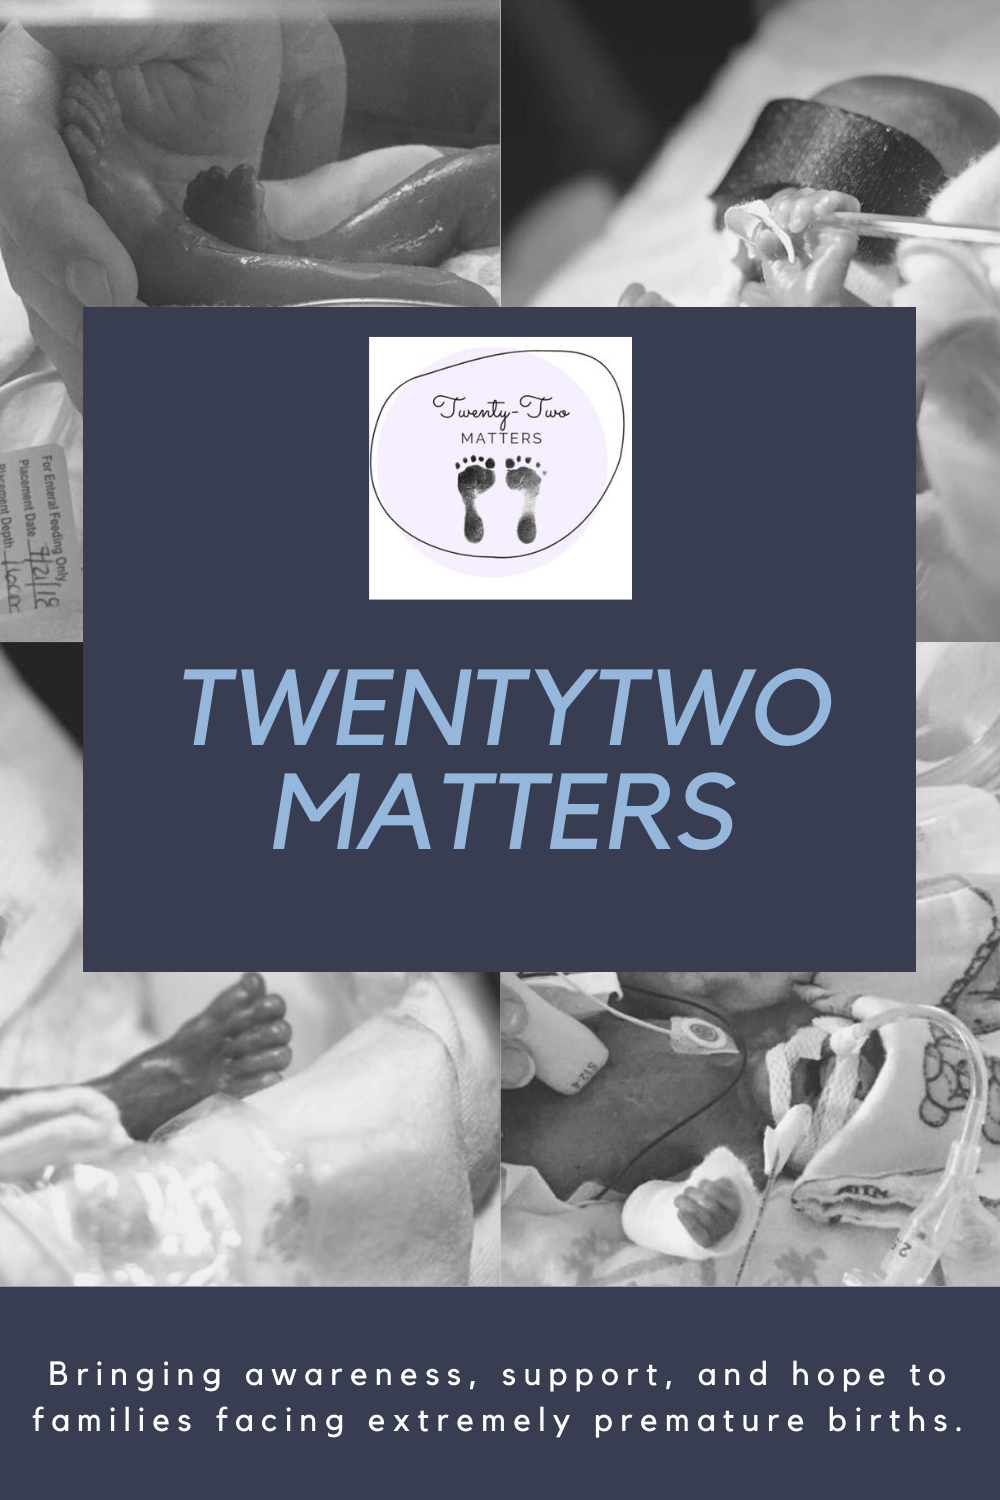 TwentyTwo Matters: Advocating for the extremely premature